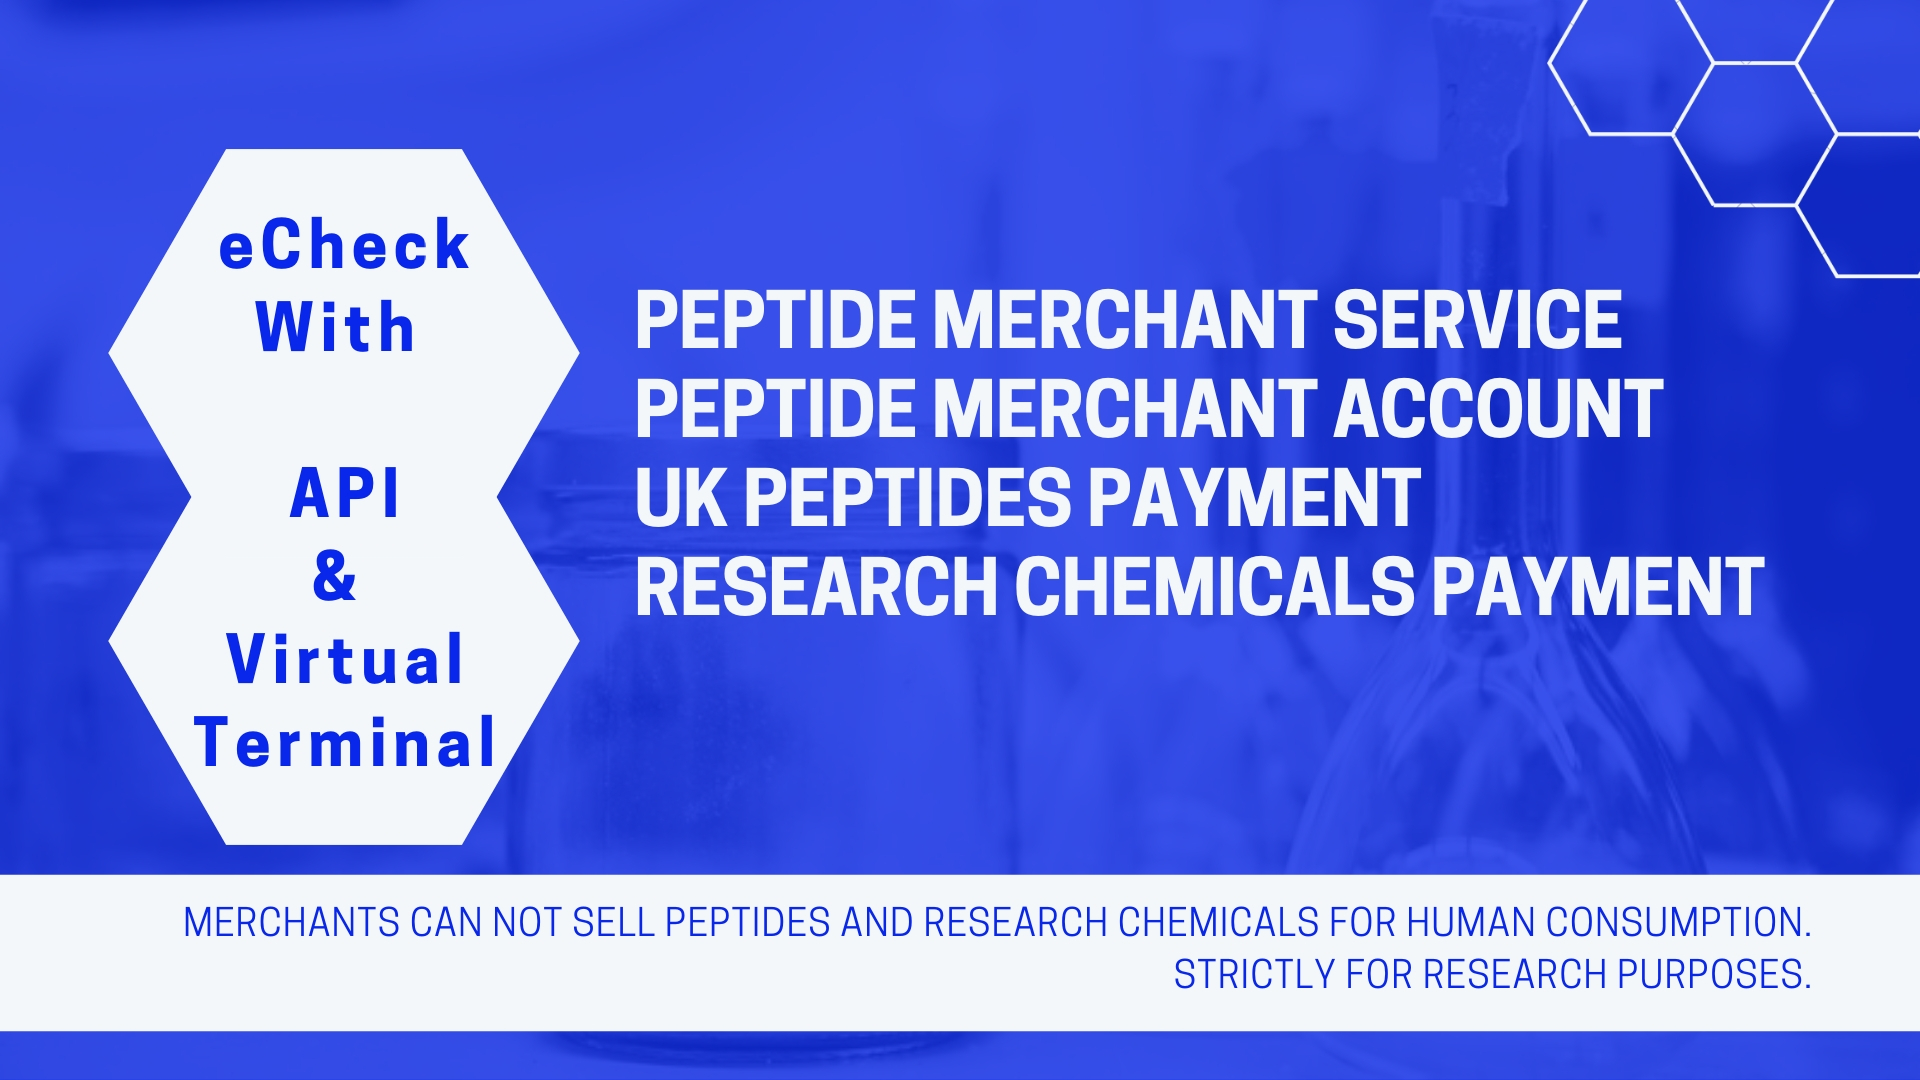 Peptide Merchant Account With Echeck